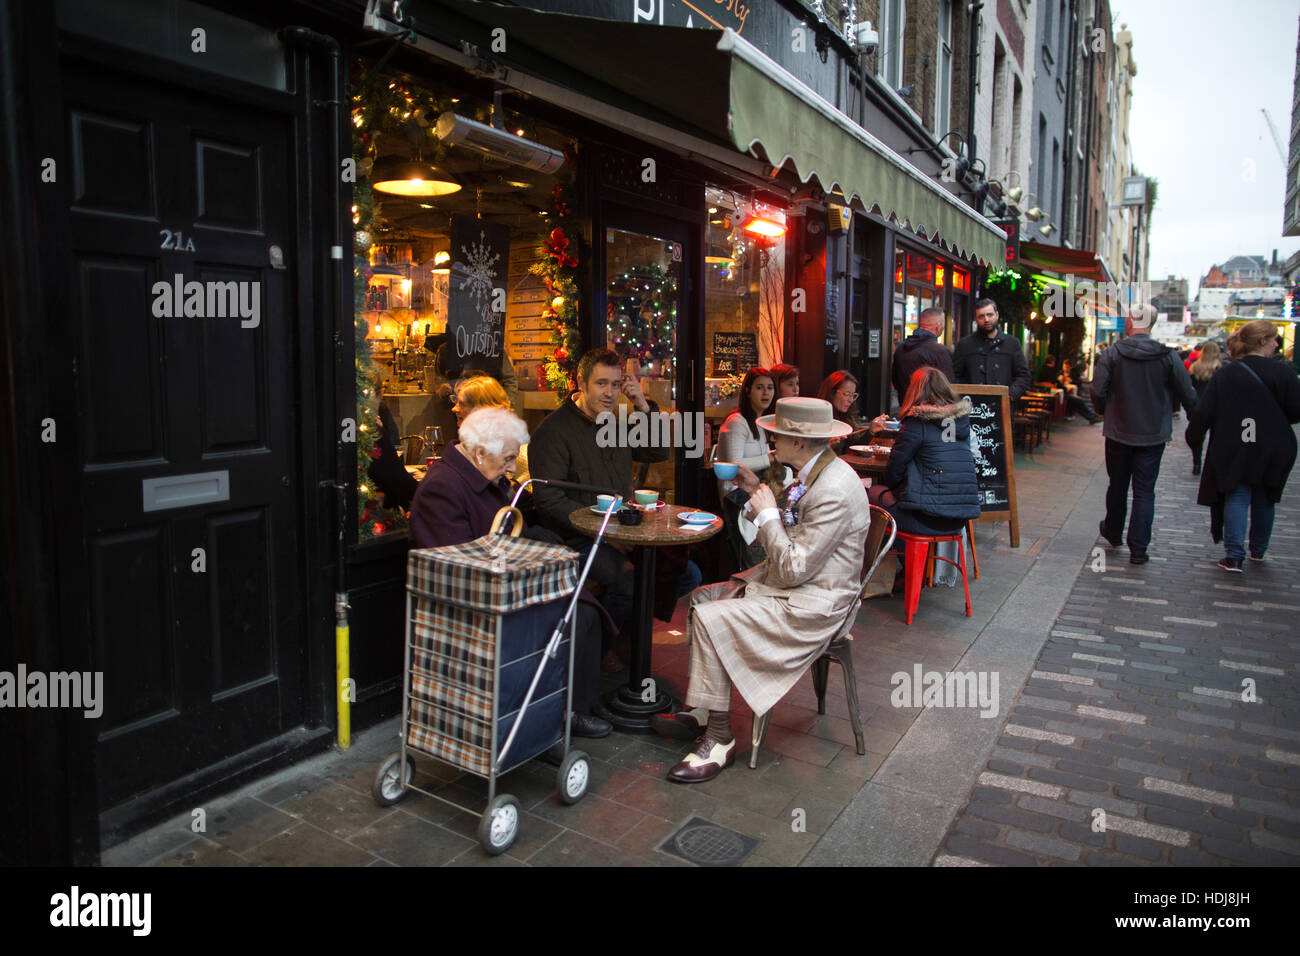 George Skeggs, also known as Soho George, eighty year old born and raised in London, sitting outside a cafe on Berwick - Stock Image